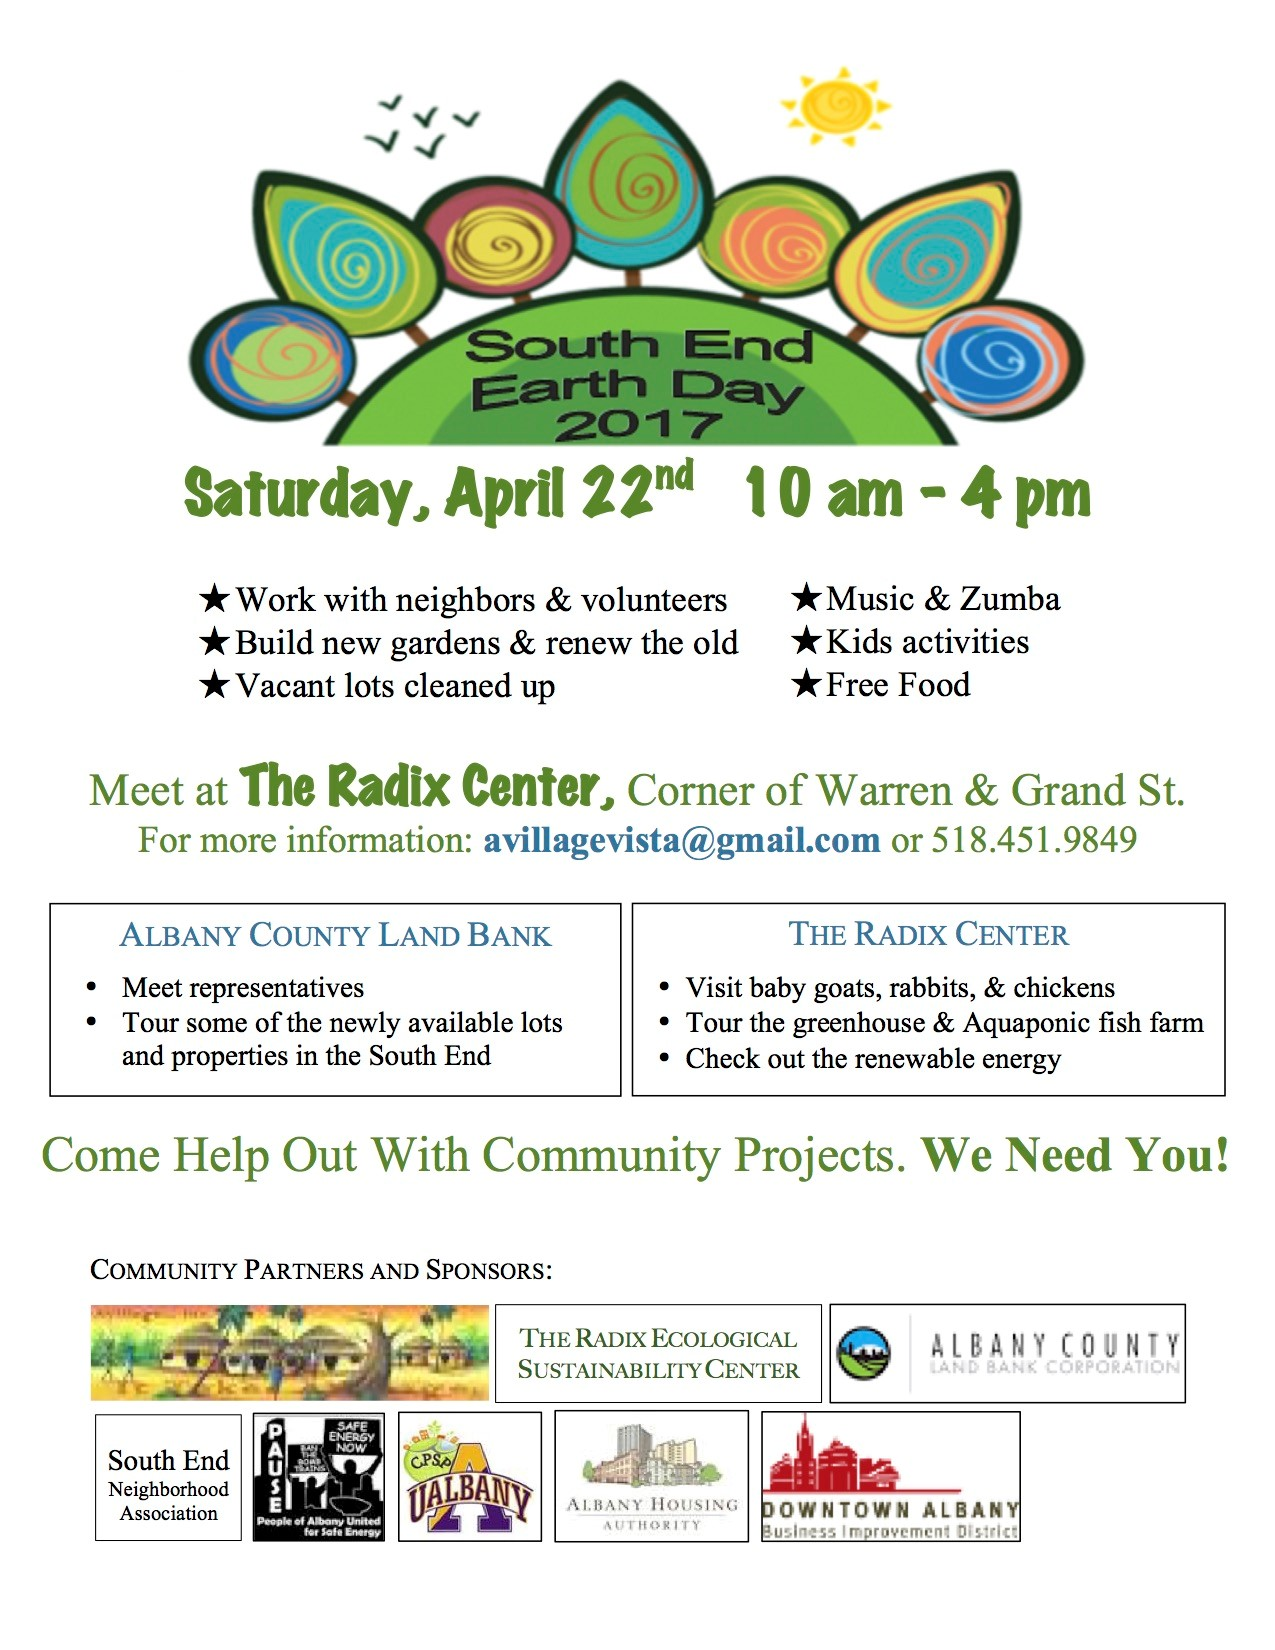 South End Earth Day Albany Housing Authority News